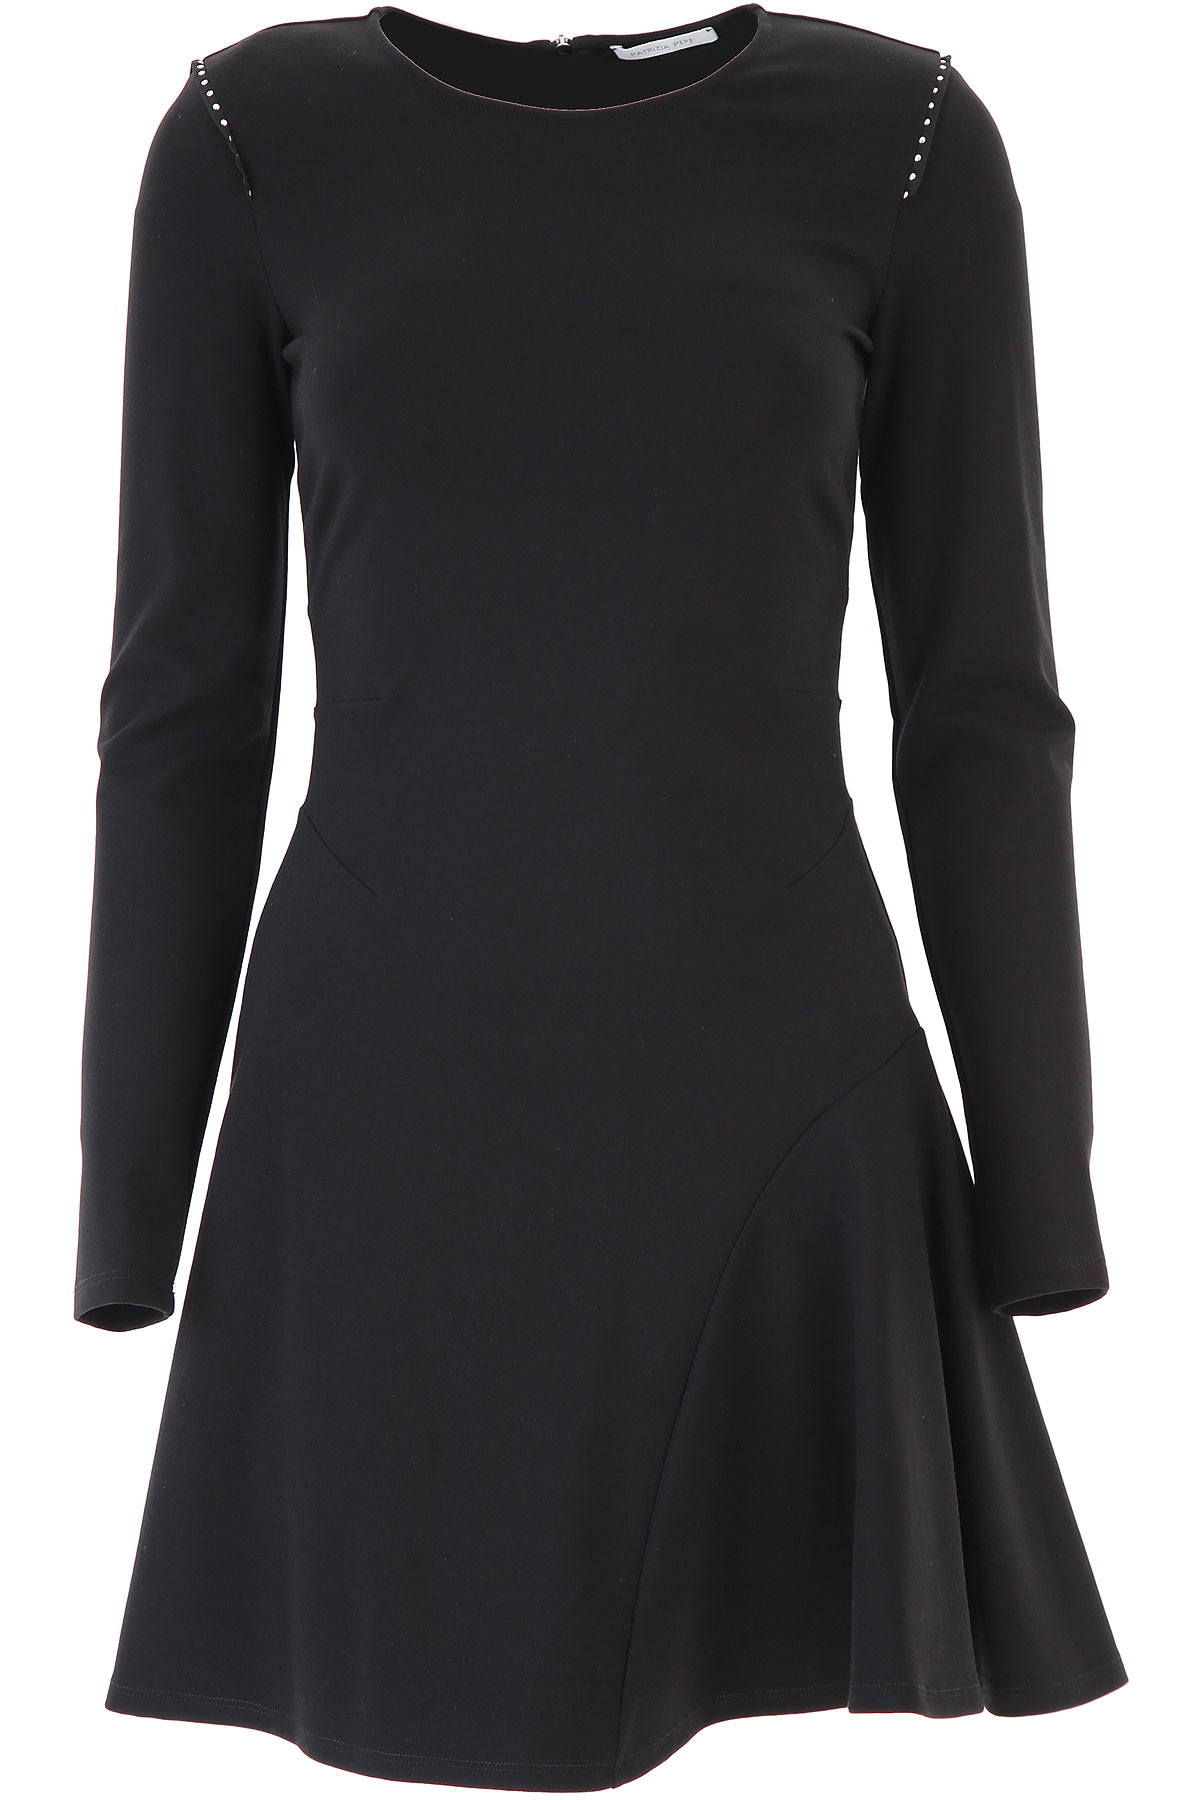 Patrizia Pepe Dress for Women, Evening Cocktail Party On Sale, Black, Viscose, 2019, 10 2 4 8